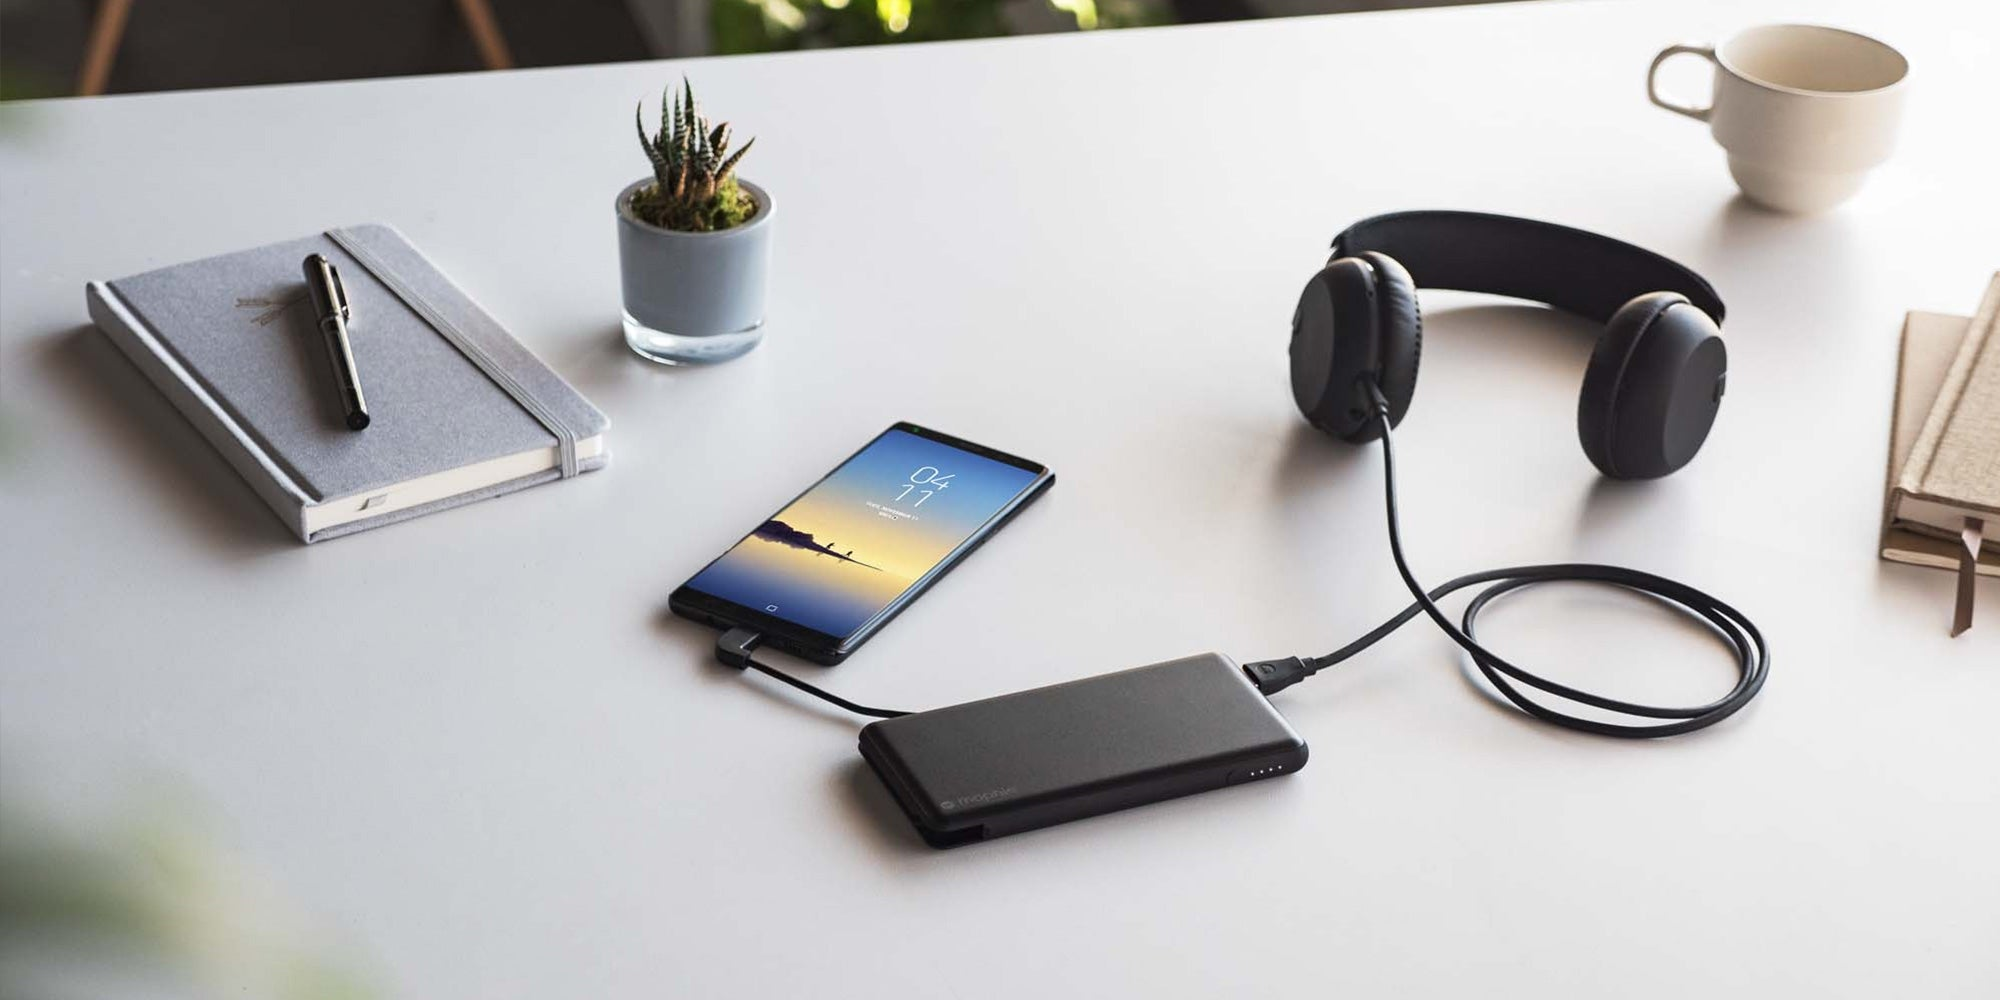 A phone and headphones lying on a table charging with a powerstation plus XL